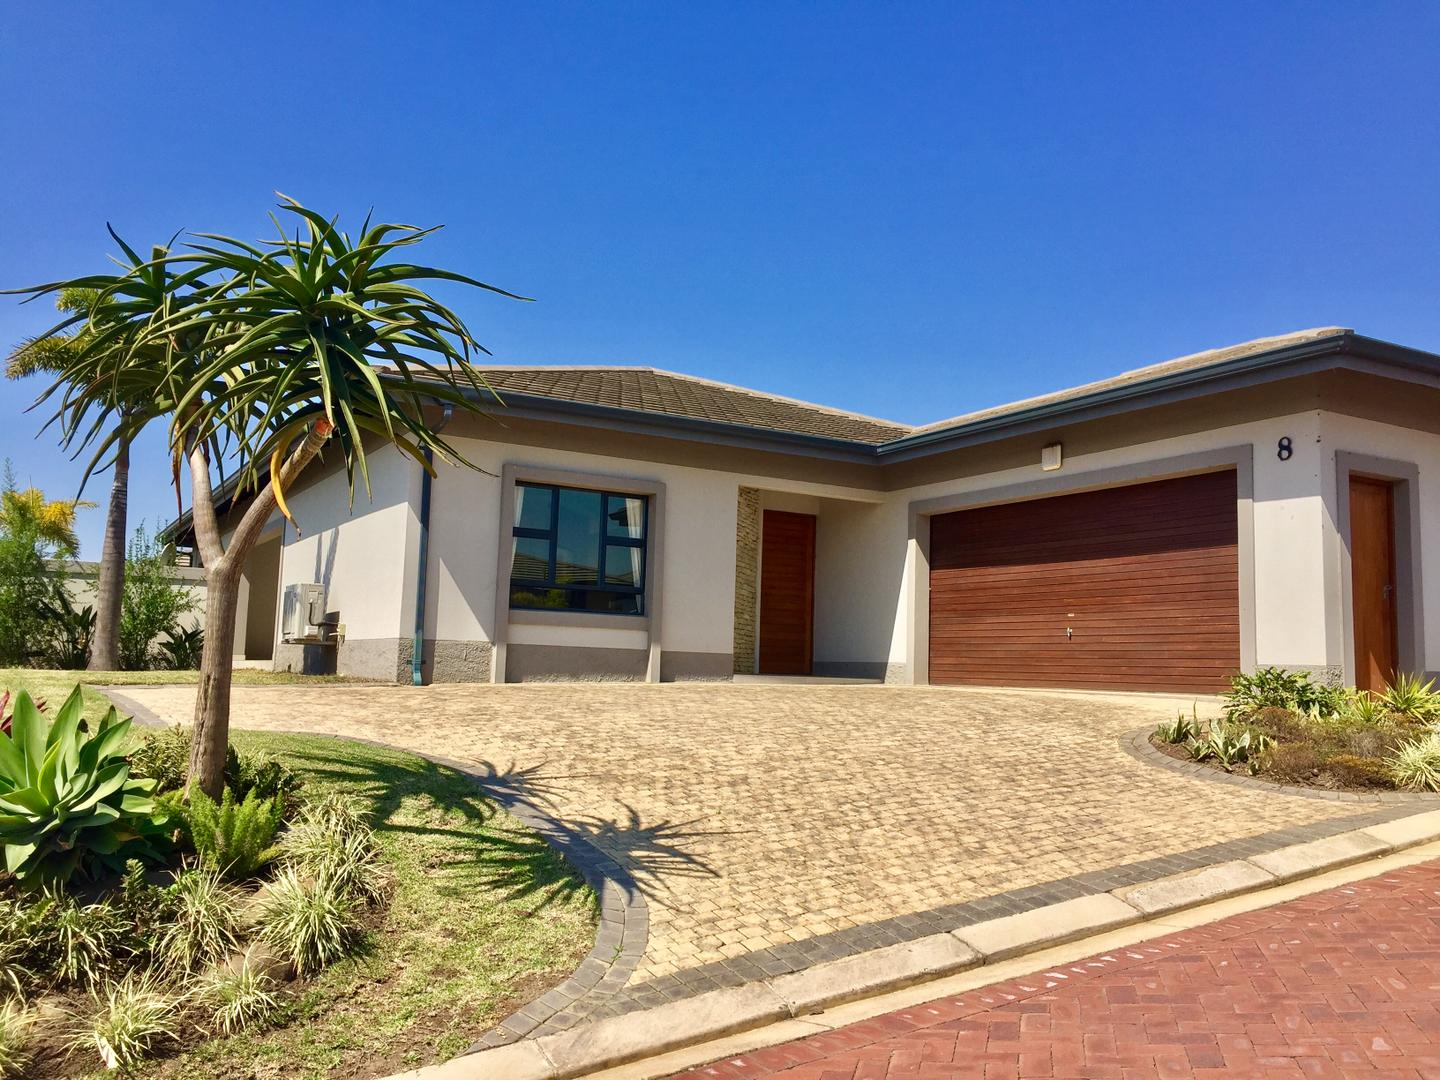 3 BedroomHouse For Sale In Tinley Manor